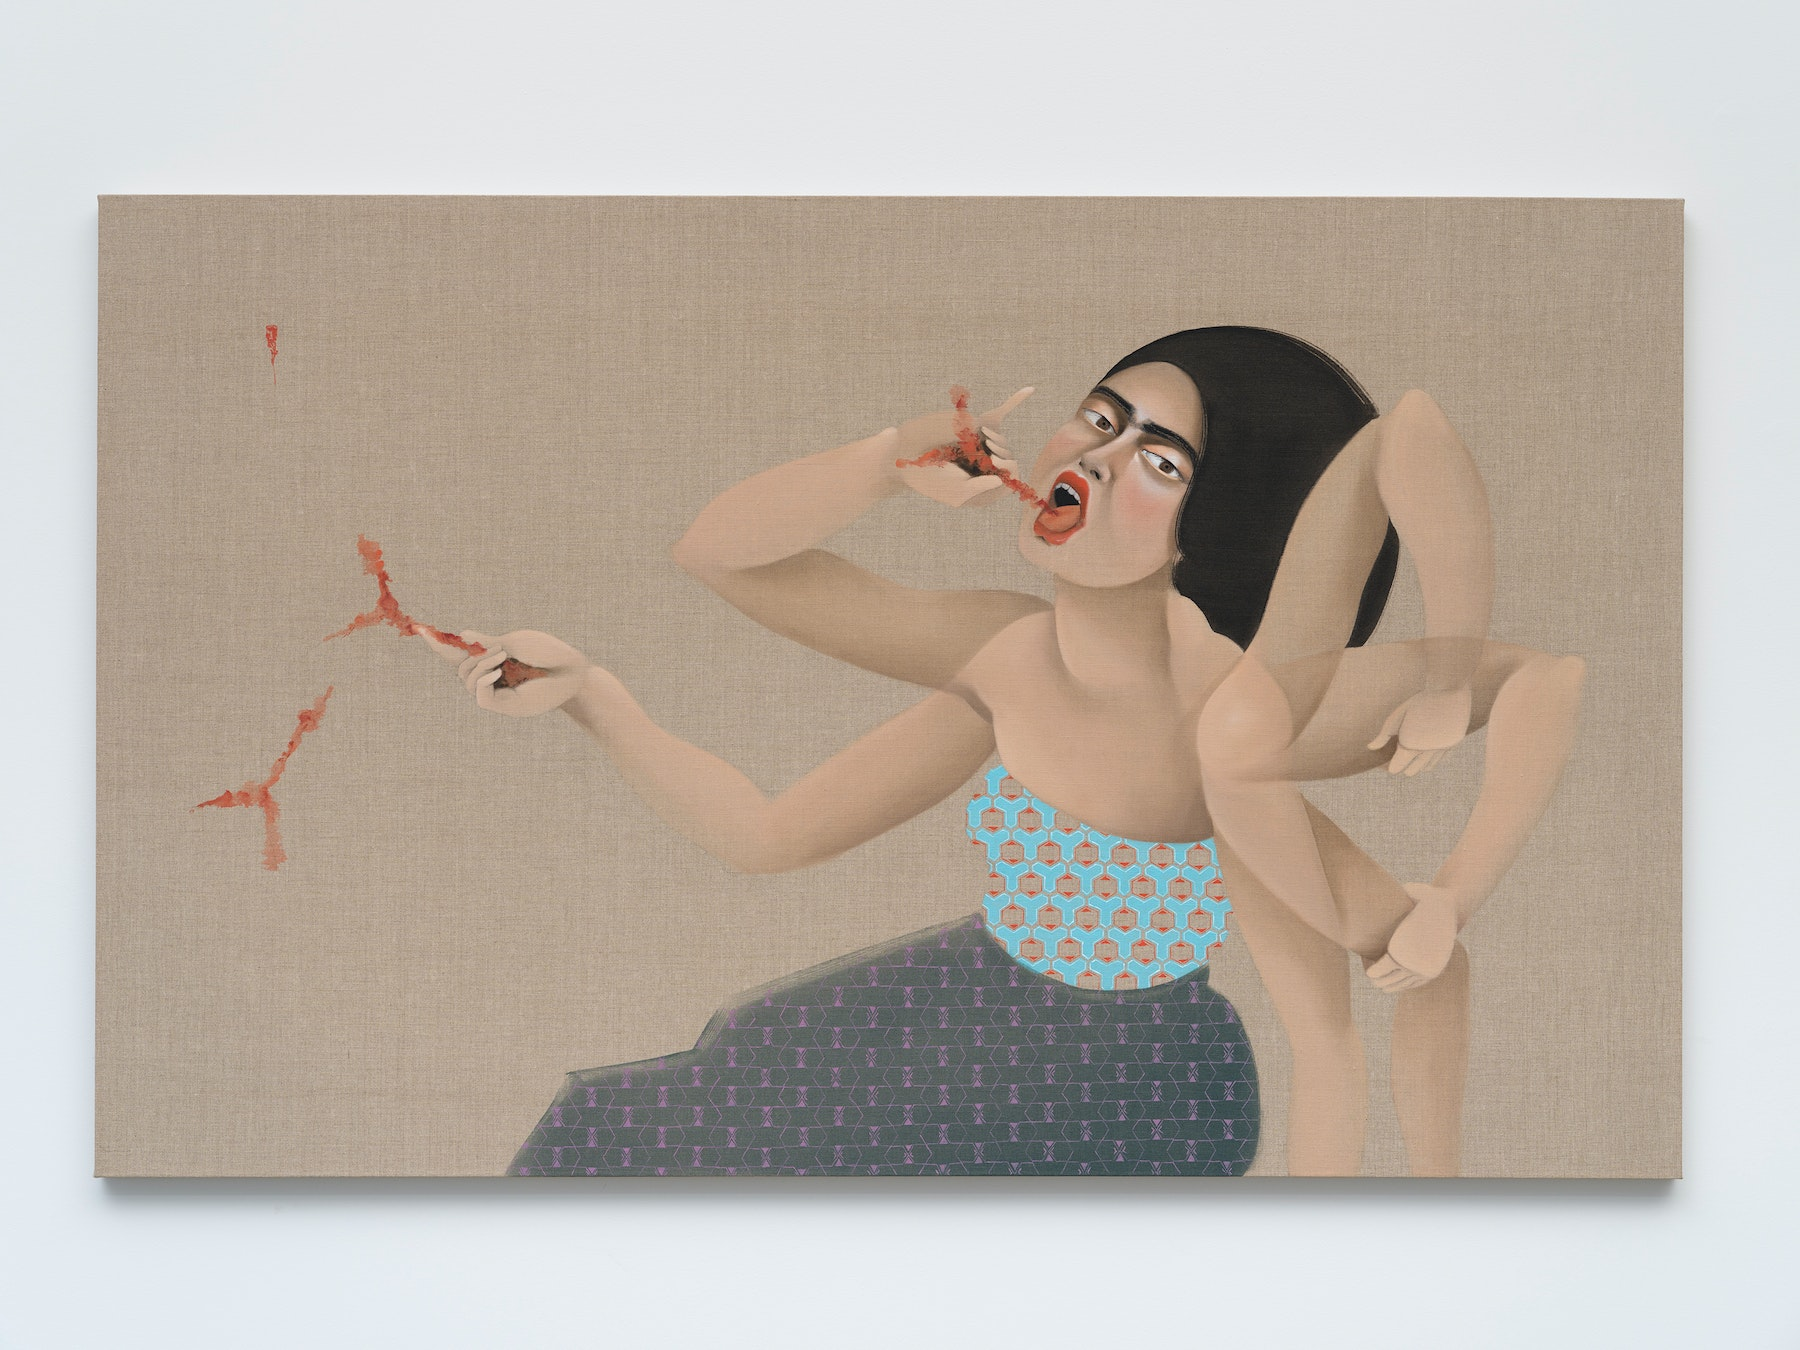 """Hayv Kahraman """"Swallowing Antibodies,"""" 2021 Oil on linen 42"""" x 68"""" [HxW] (106.68 x 172.72 cm) Inventory #KAR186 Courtesy of the artist and Vielmetter Los Angeles Photo credit: Jeff Mclane"""